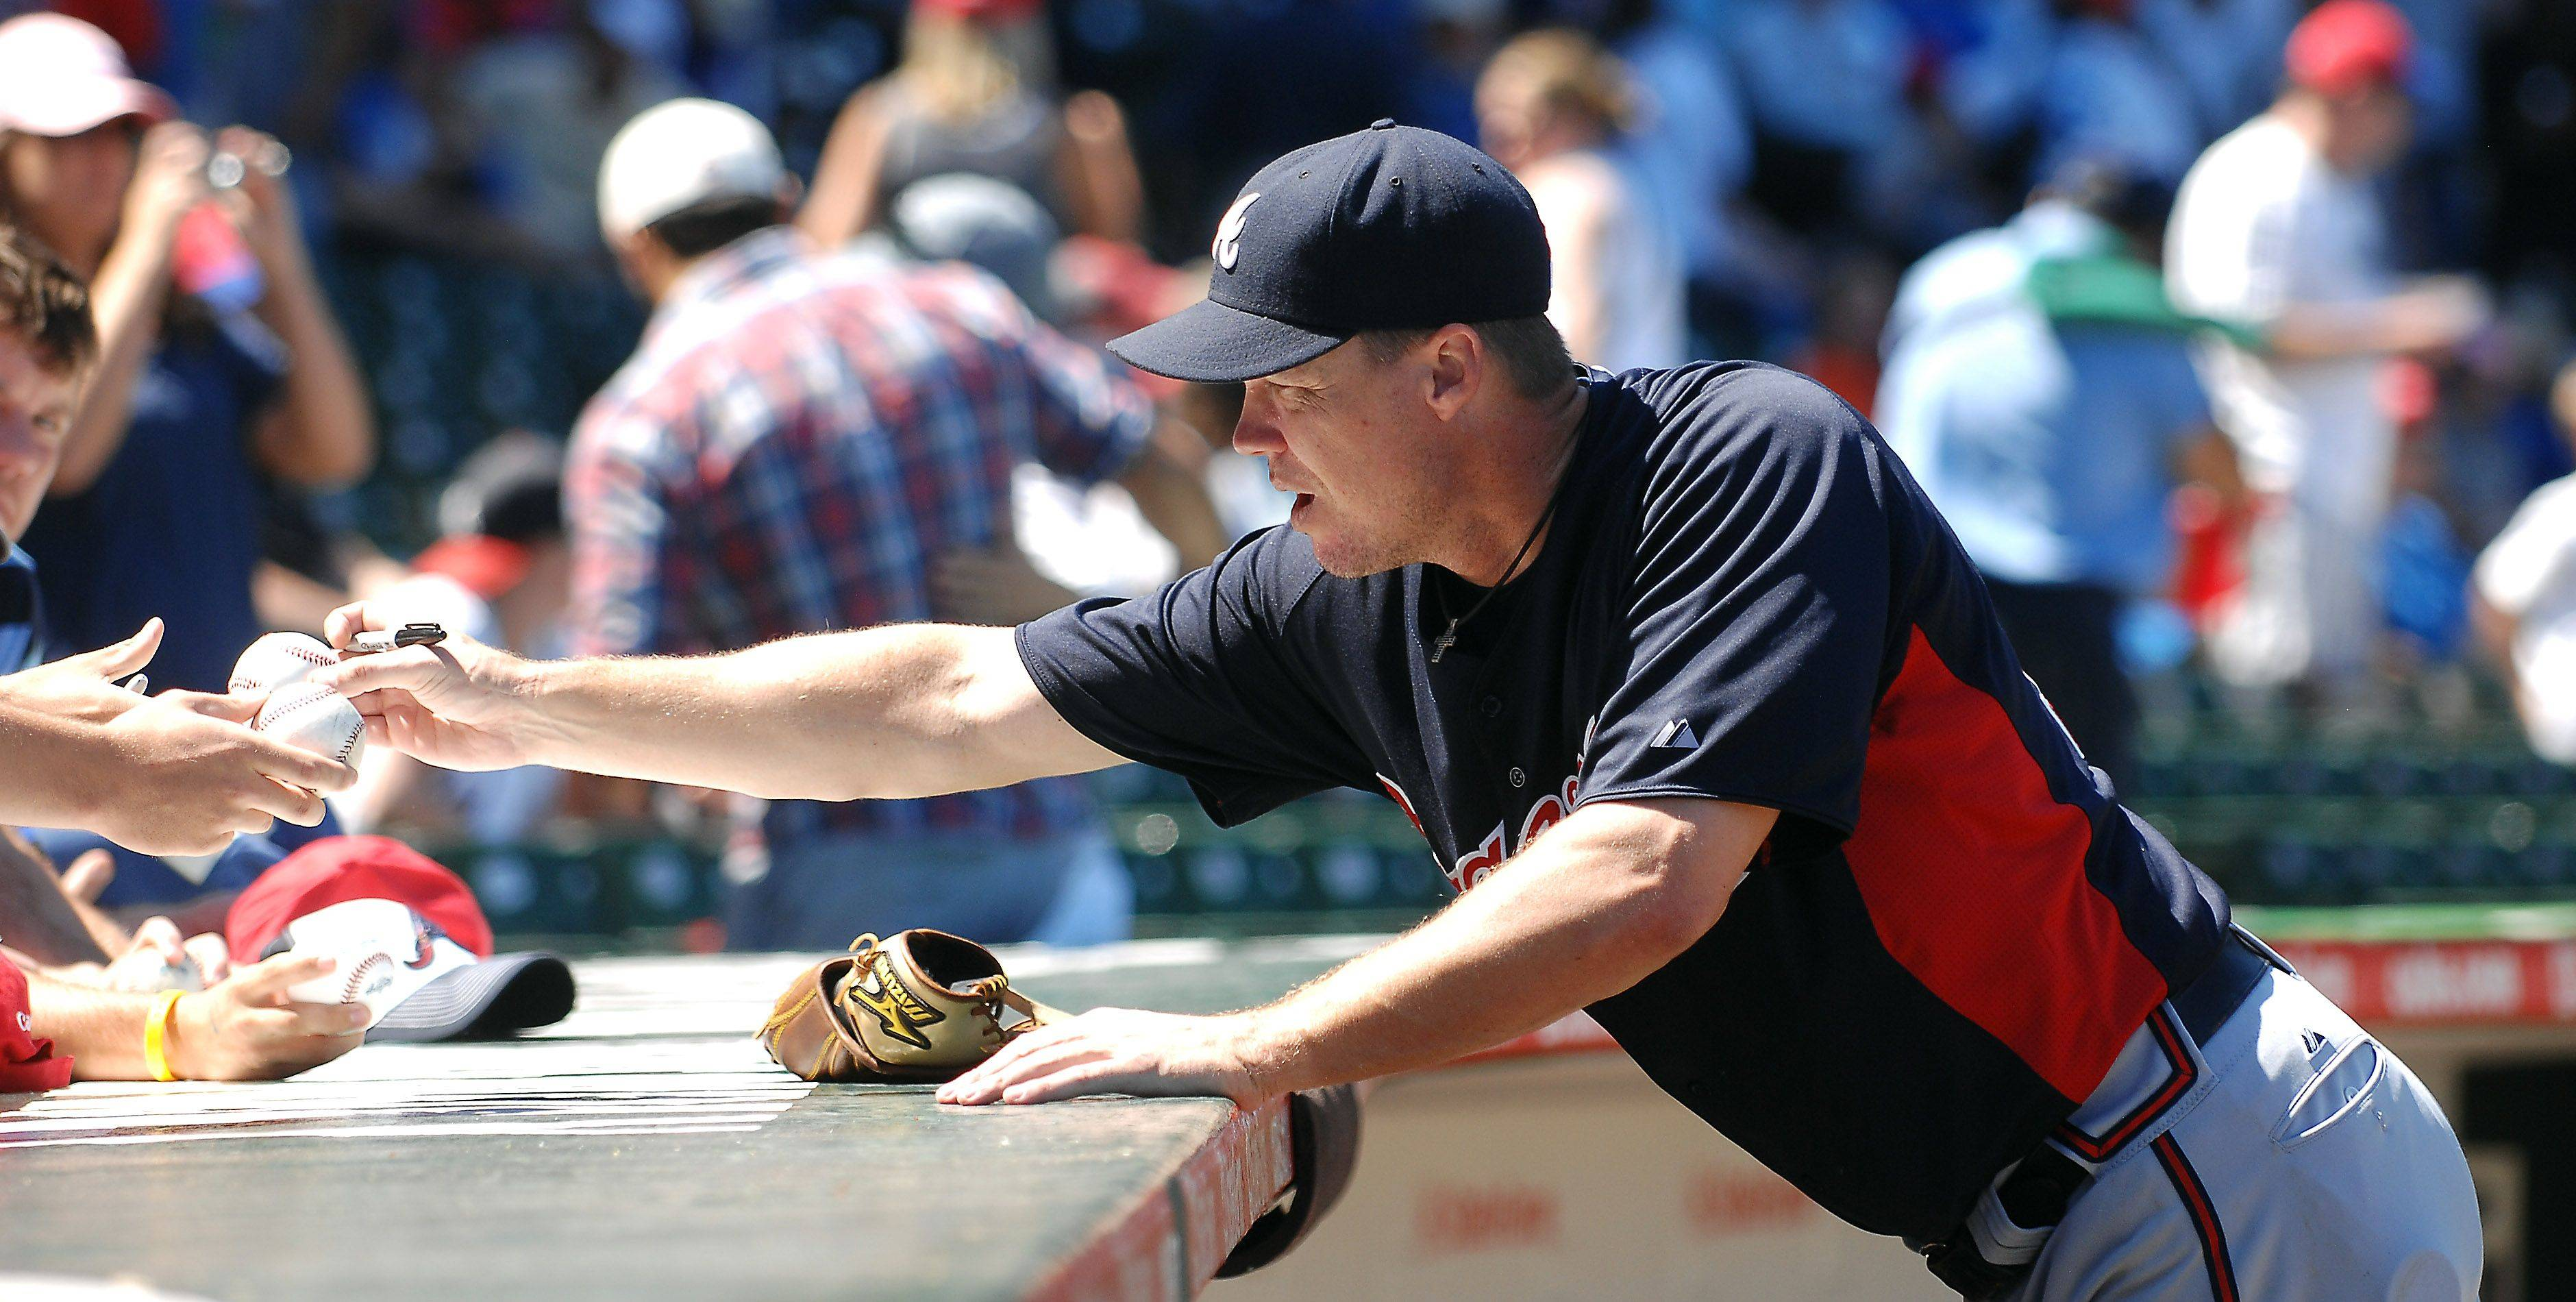 Atlanta Braves third baseman Chipper Jones signs autographs before Thursday's game at Wrigley Field in Chicago.